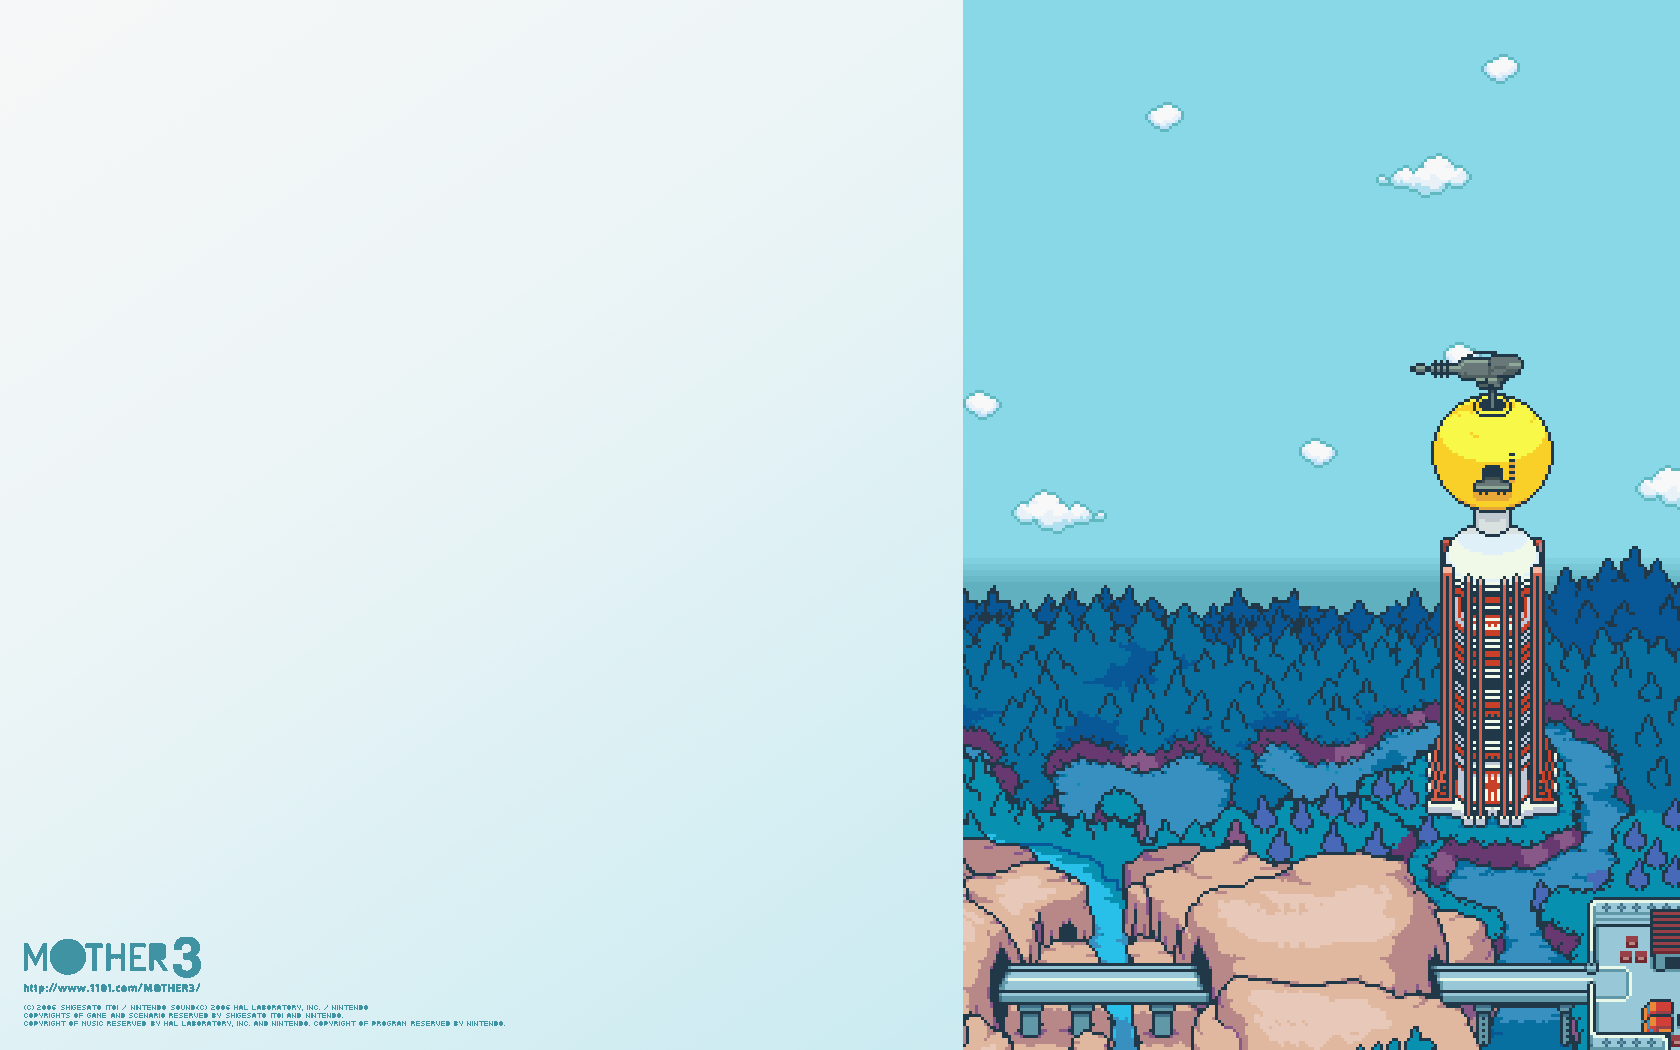 Mother 3 1680x1050 Wallpapers EarthBound 2 MOTHER 3 Forum 1680x1050